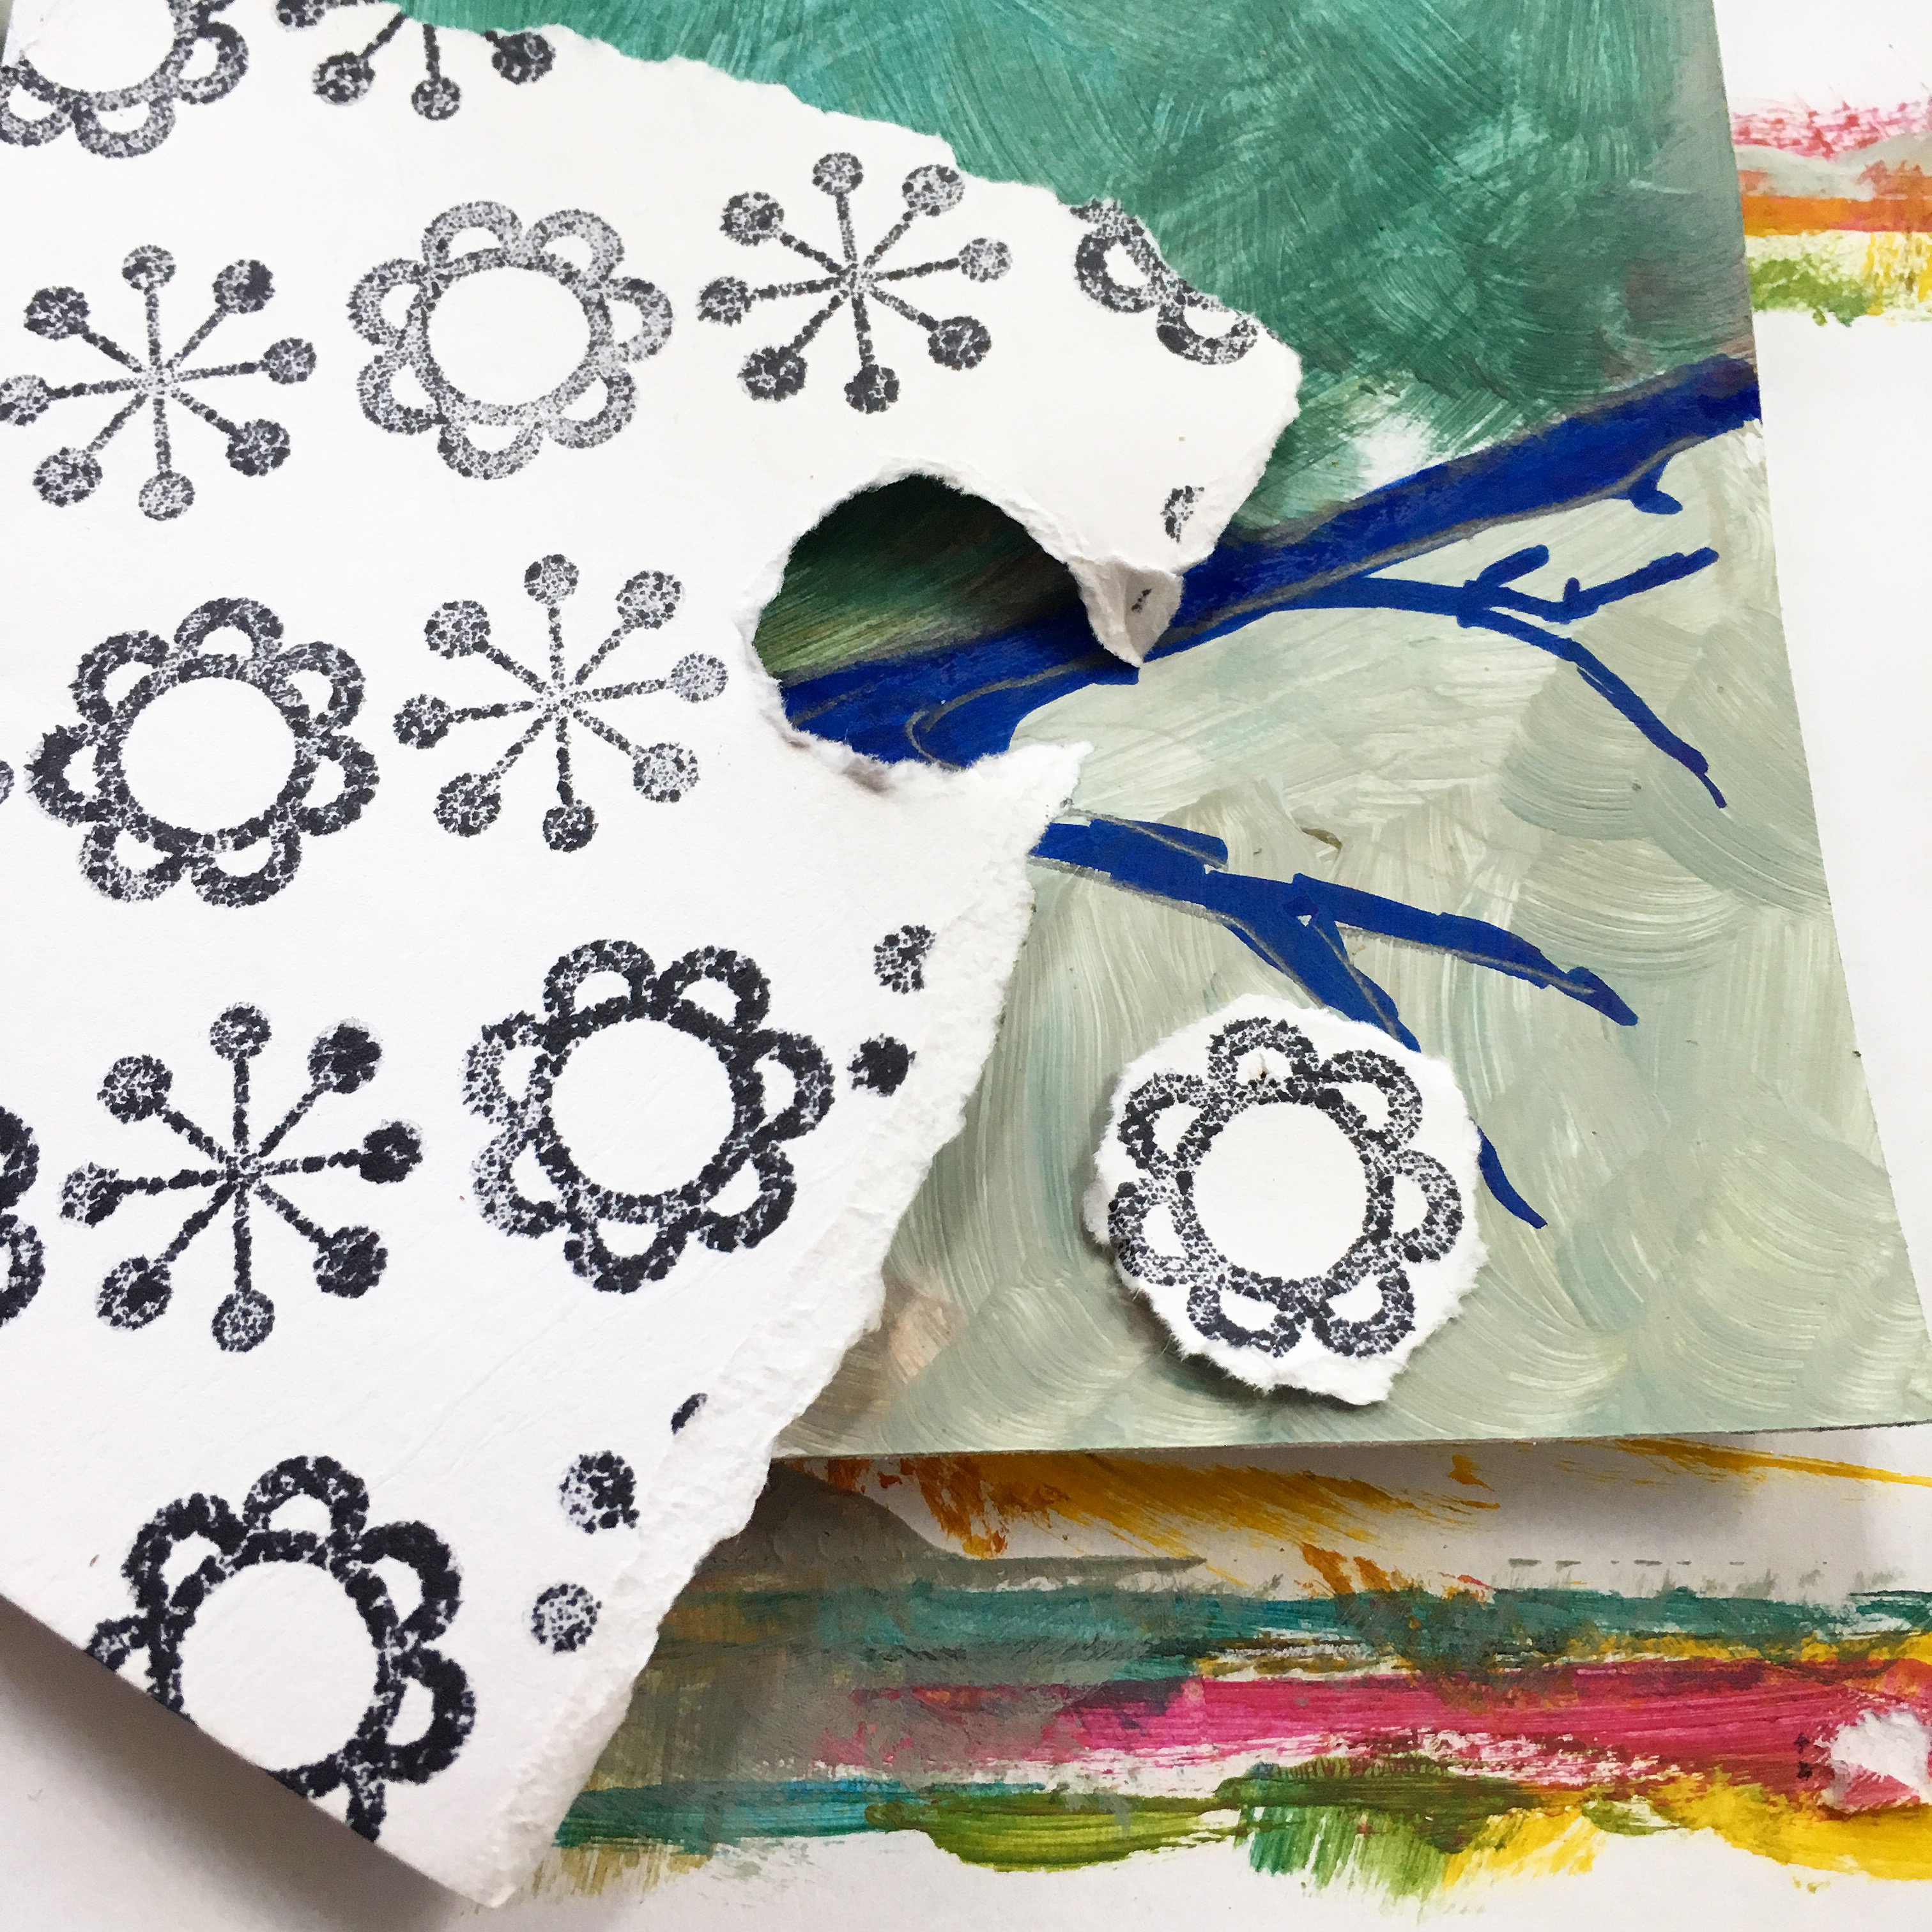 white piece of paper with black snowflake and flower stamps, one of the flowers is torn around the edges